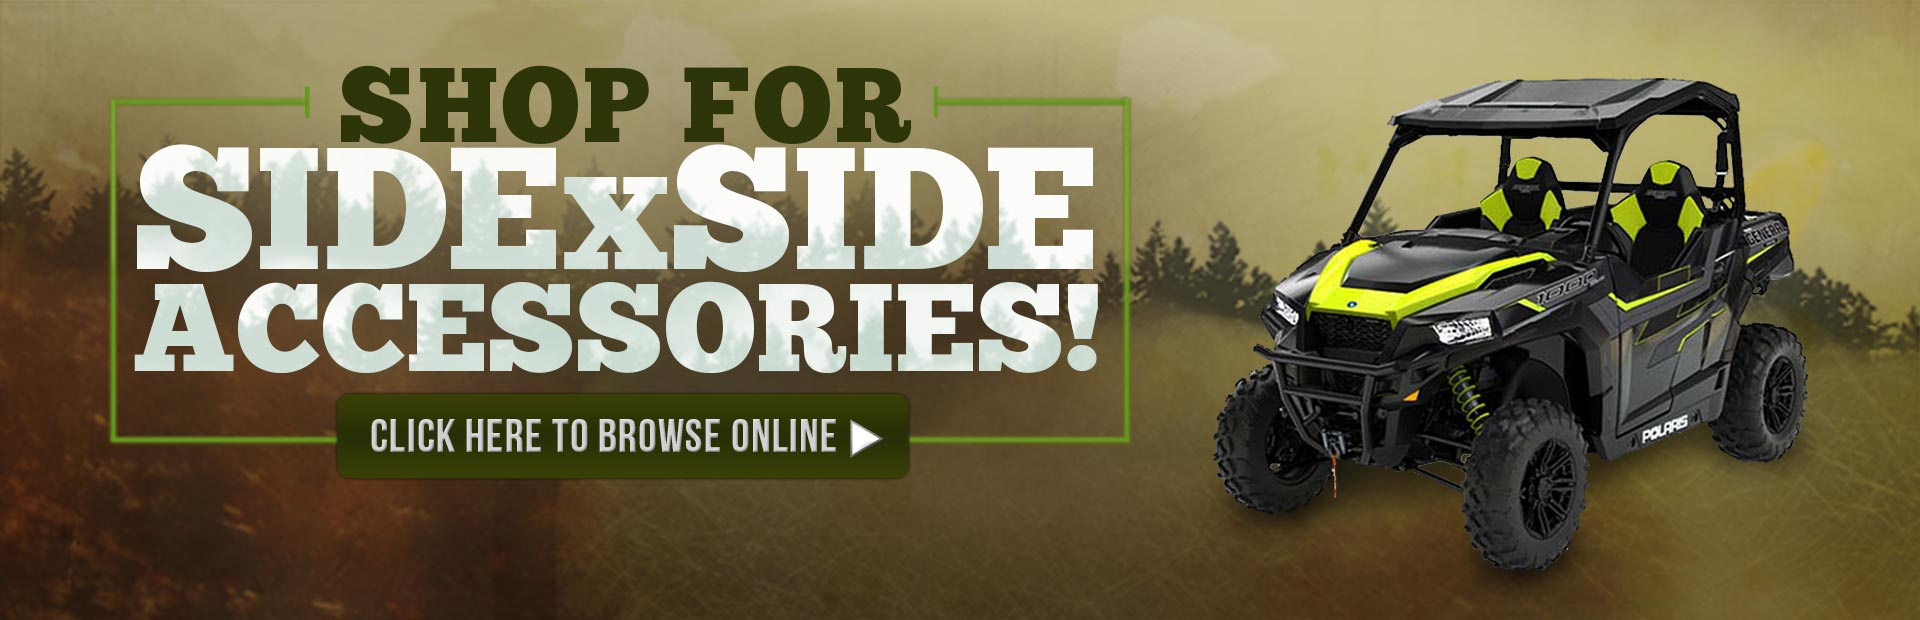 Shop for side x side accessories! Click here to browse online.